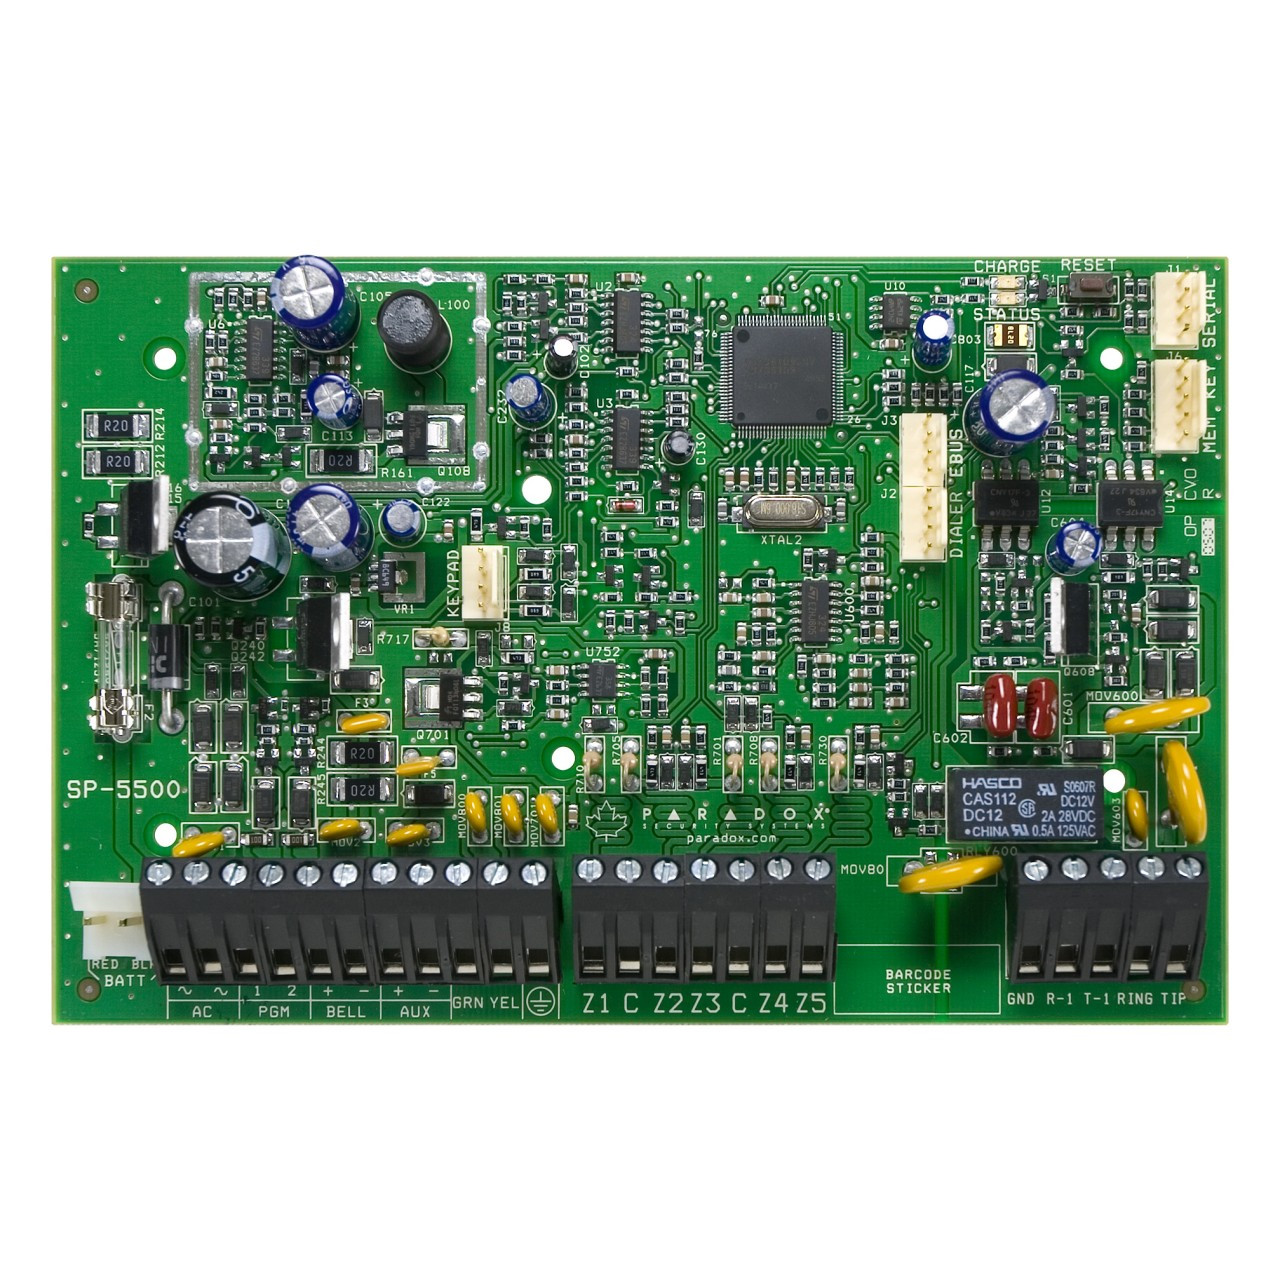 Paradox sp5500 5 to 32 zone alarm panel tremtech electrical paradox sp5500 pcb cheapraybanclubmaster Choice Image